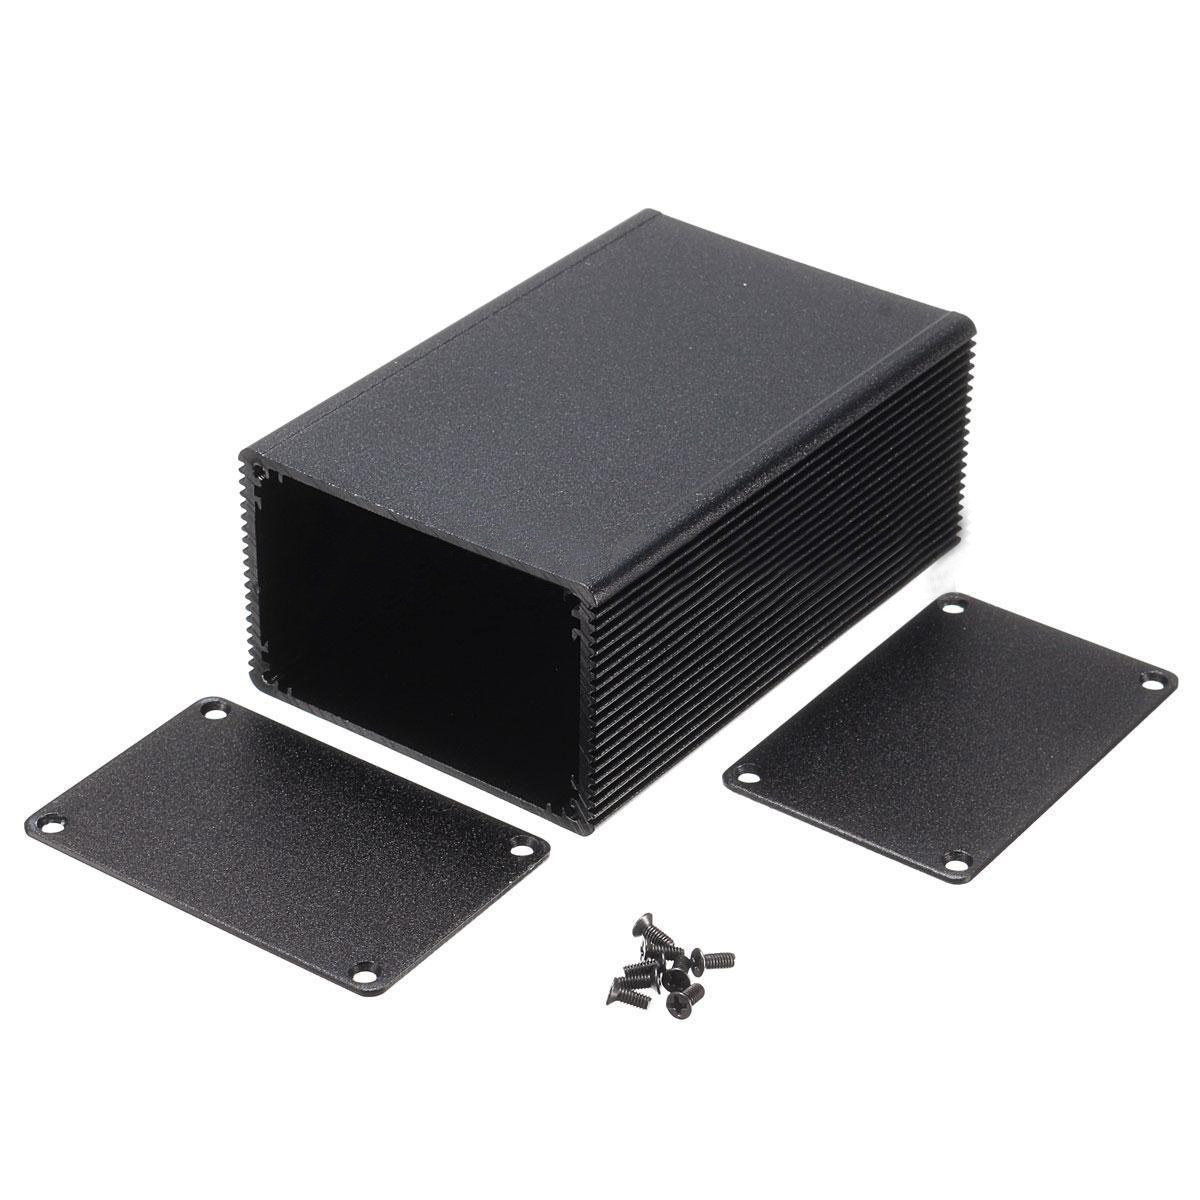 Aluminum Enclosure Electronic DIY PCB Instrument Project Box Case 100x66x43mm